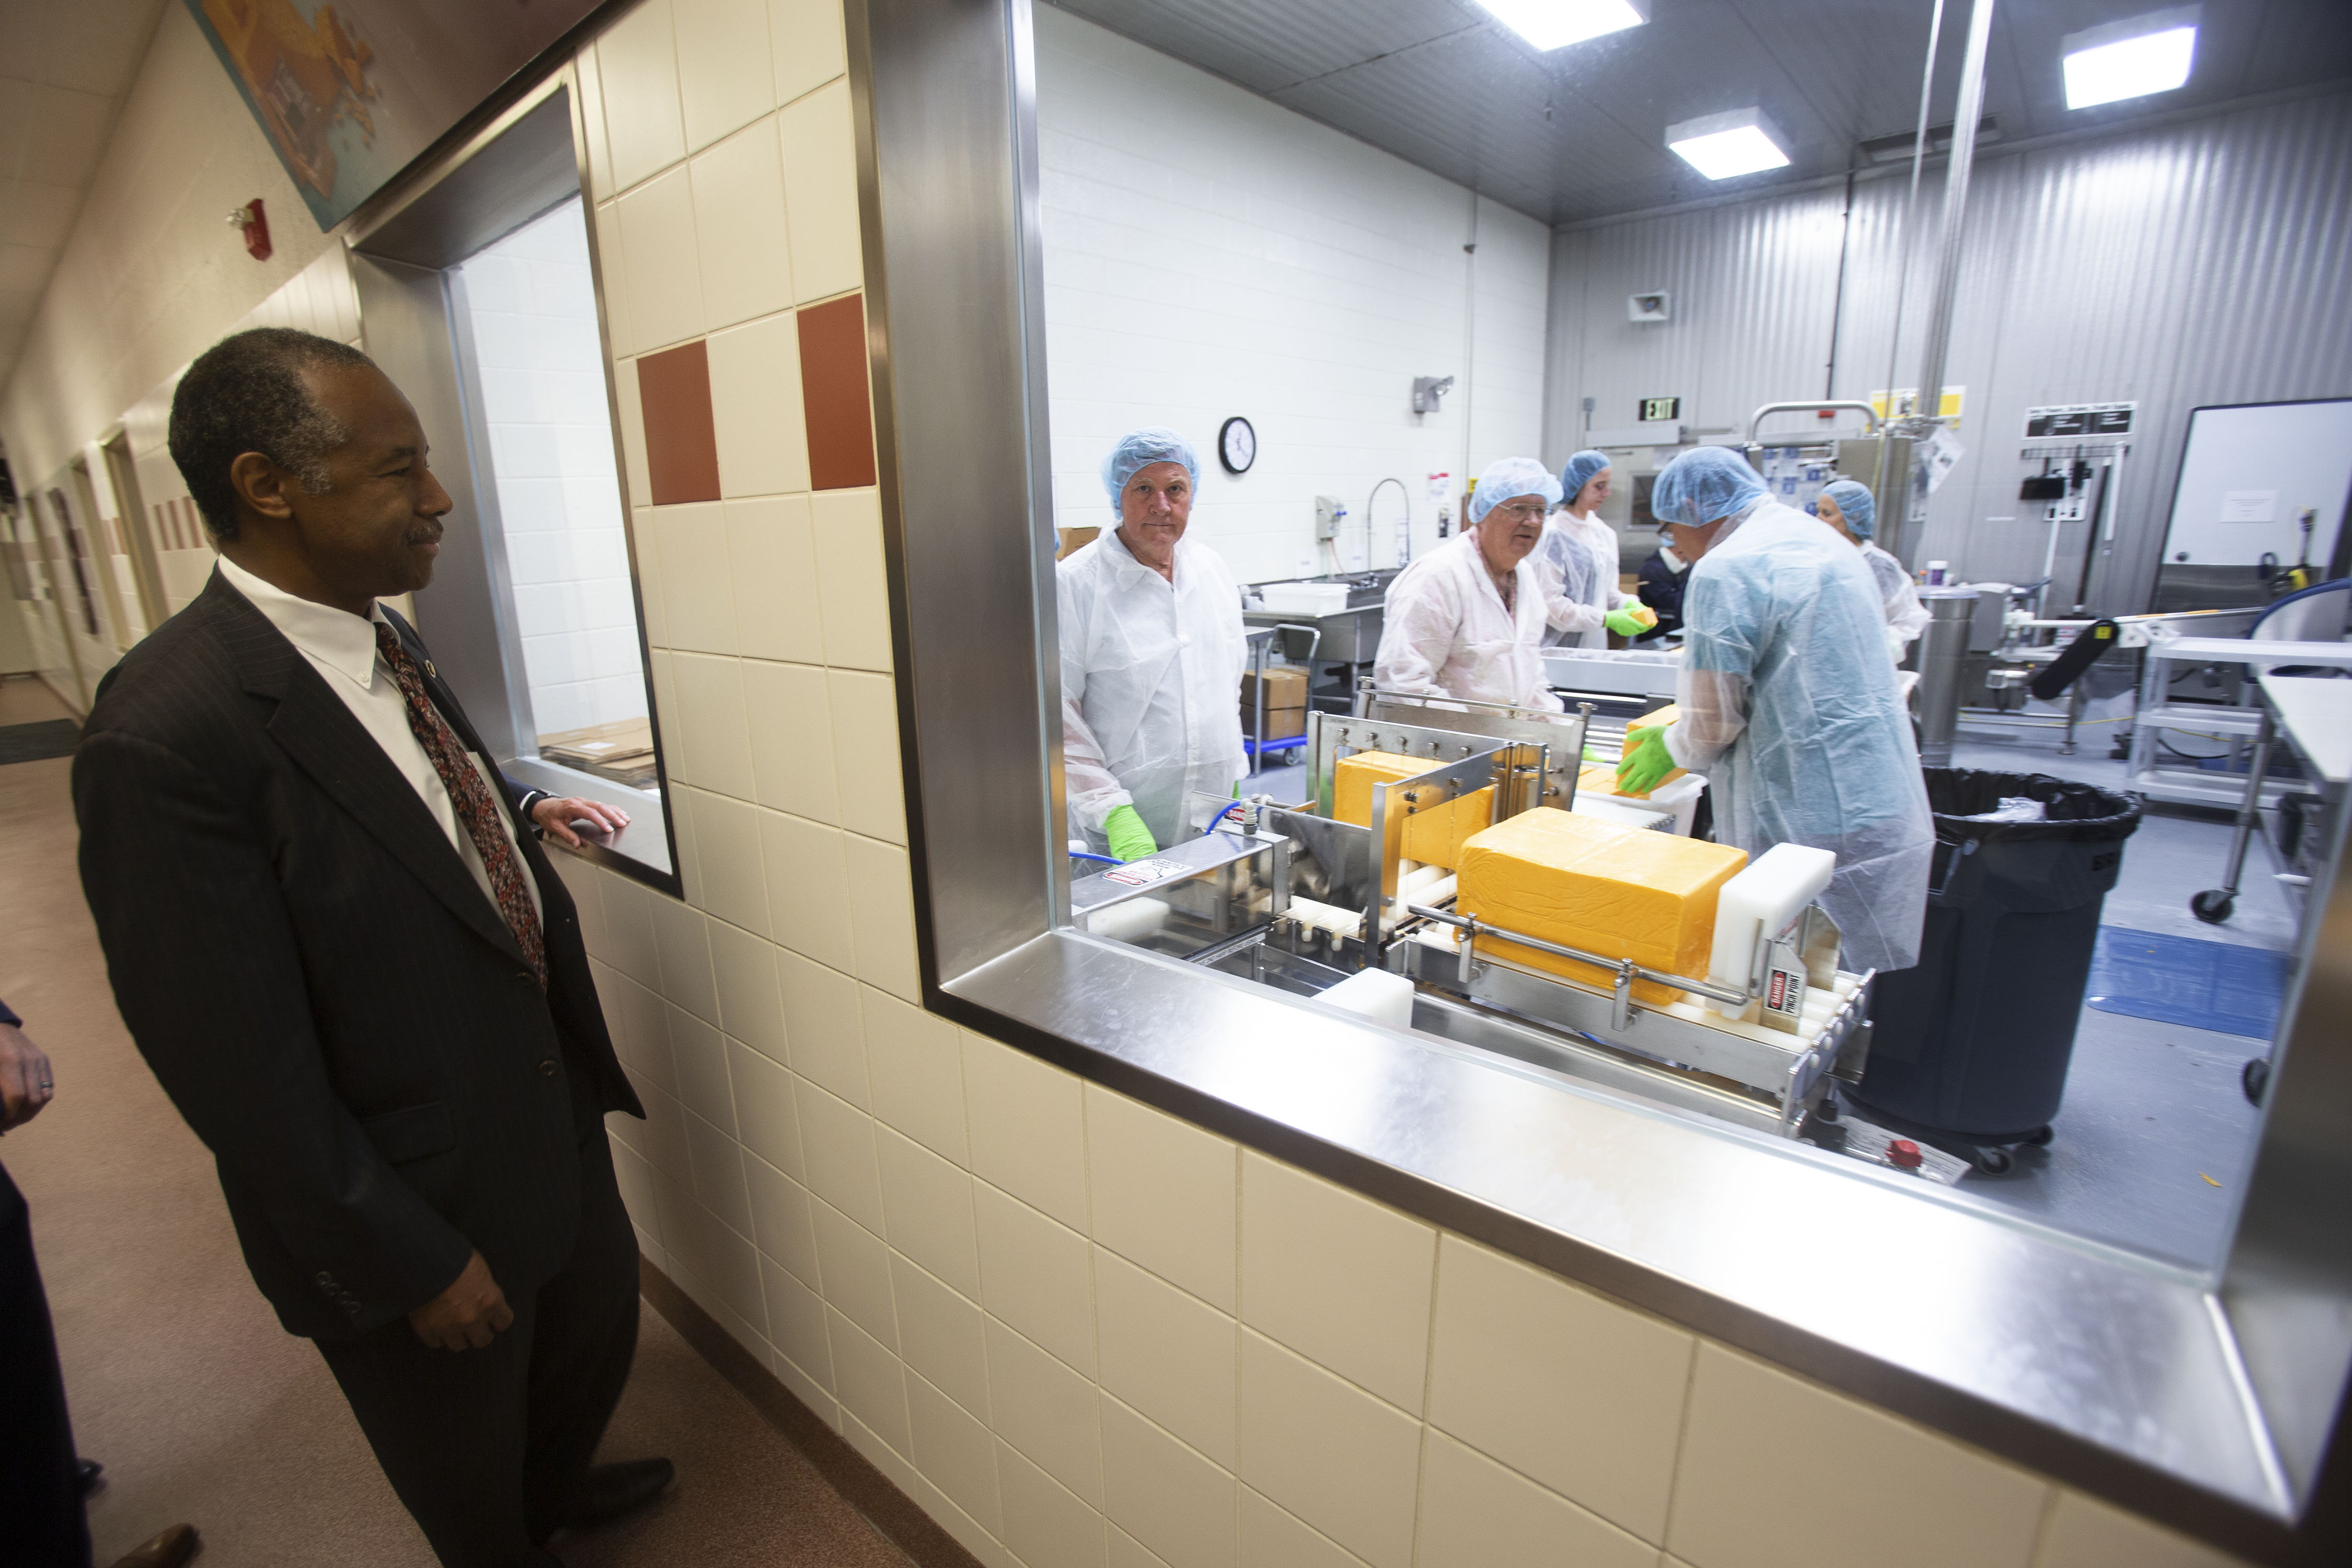 Dr. Ben Carson, secretary of Housing and Urban Development, observes workers processing cheese in the dairy facility at Welfare Square during a Thursday, July 11, 2019, tour in Salt Lake City, Utah.